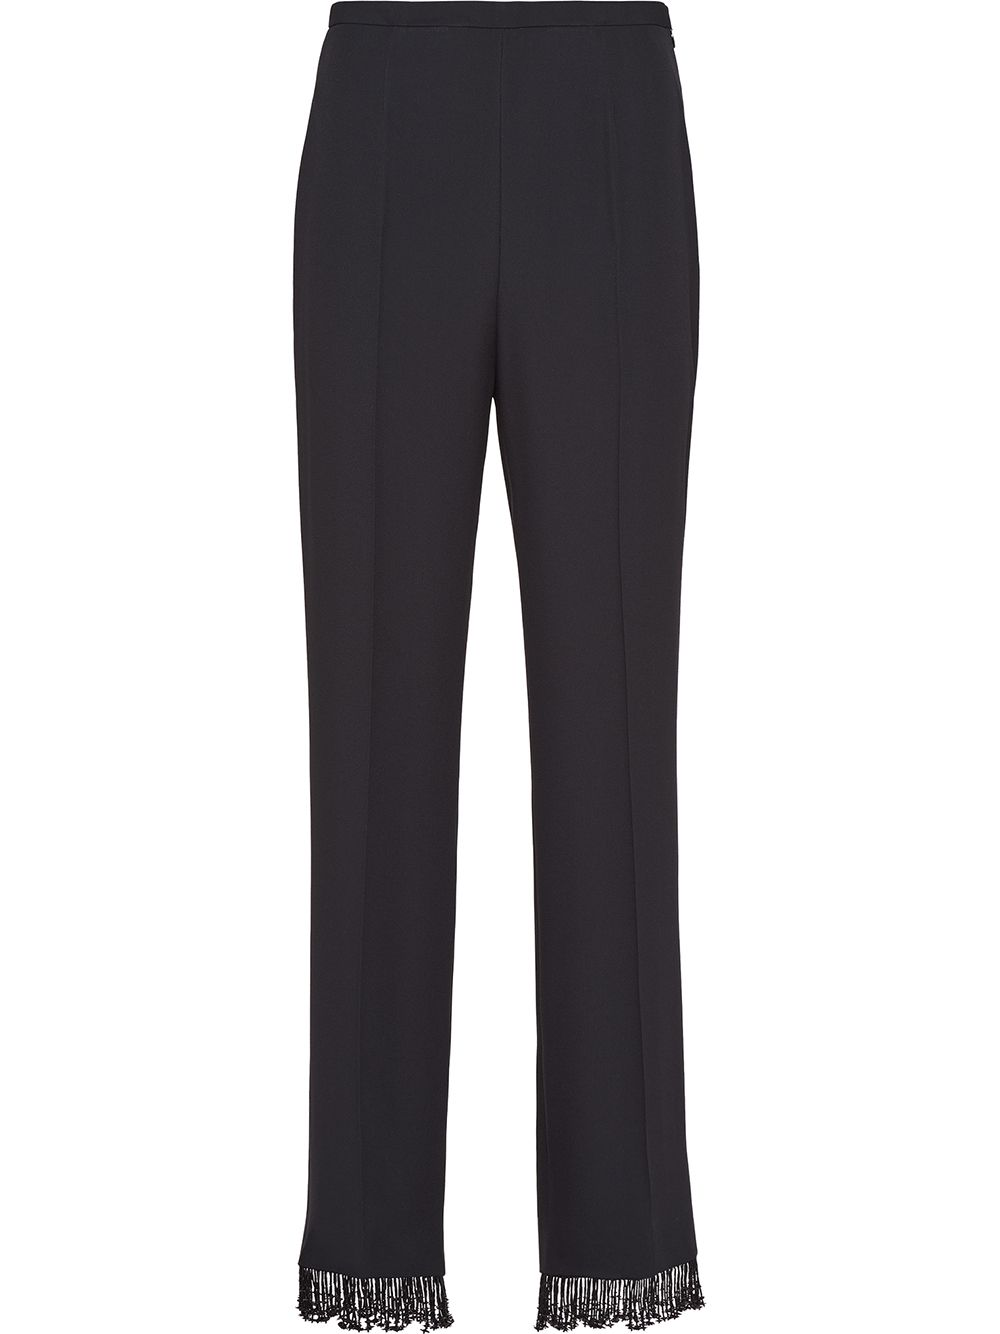 Prada embellished satin sablé trousers - Black von Prada